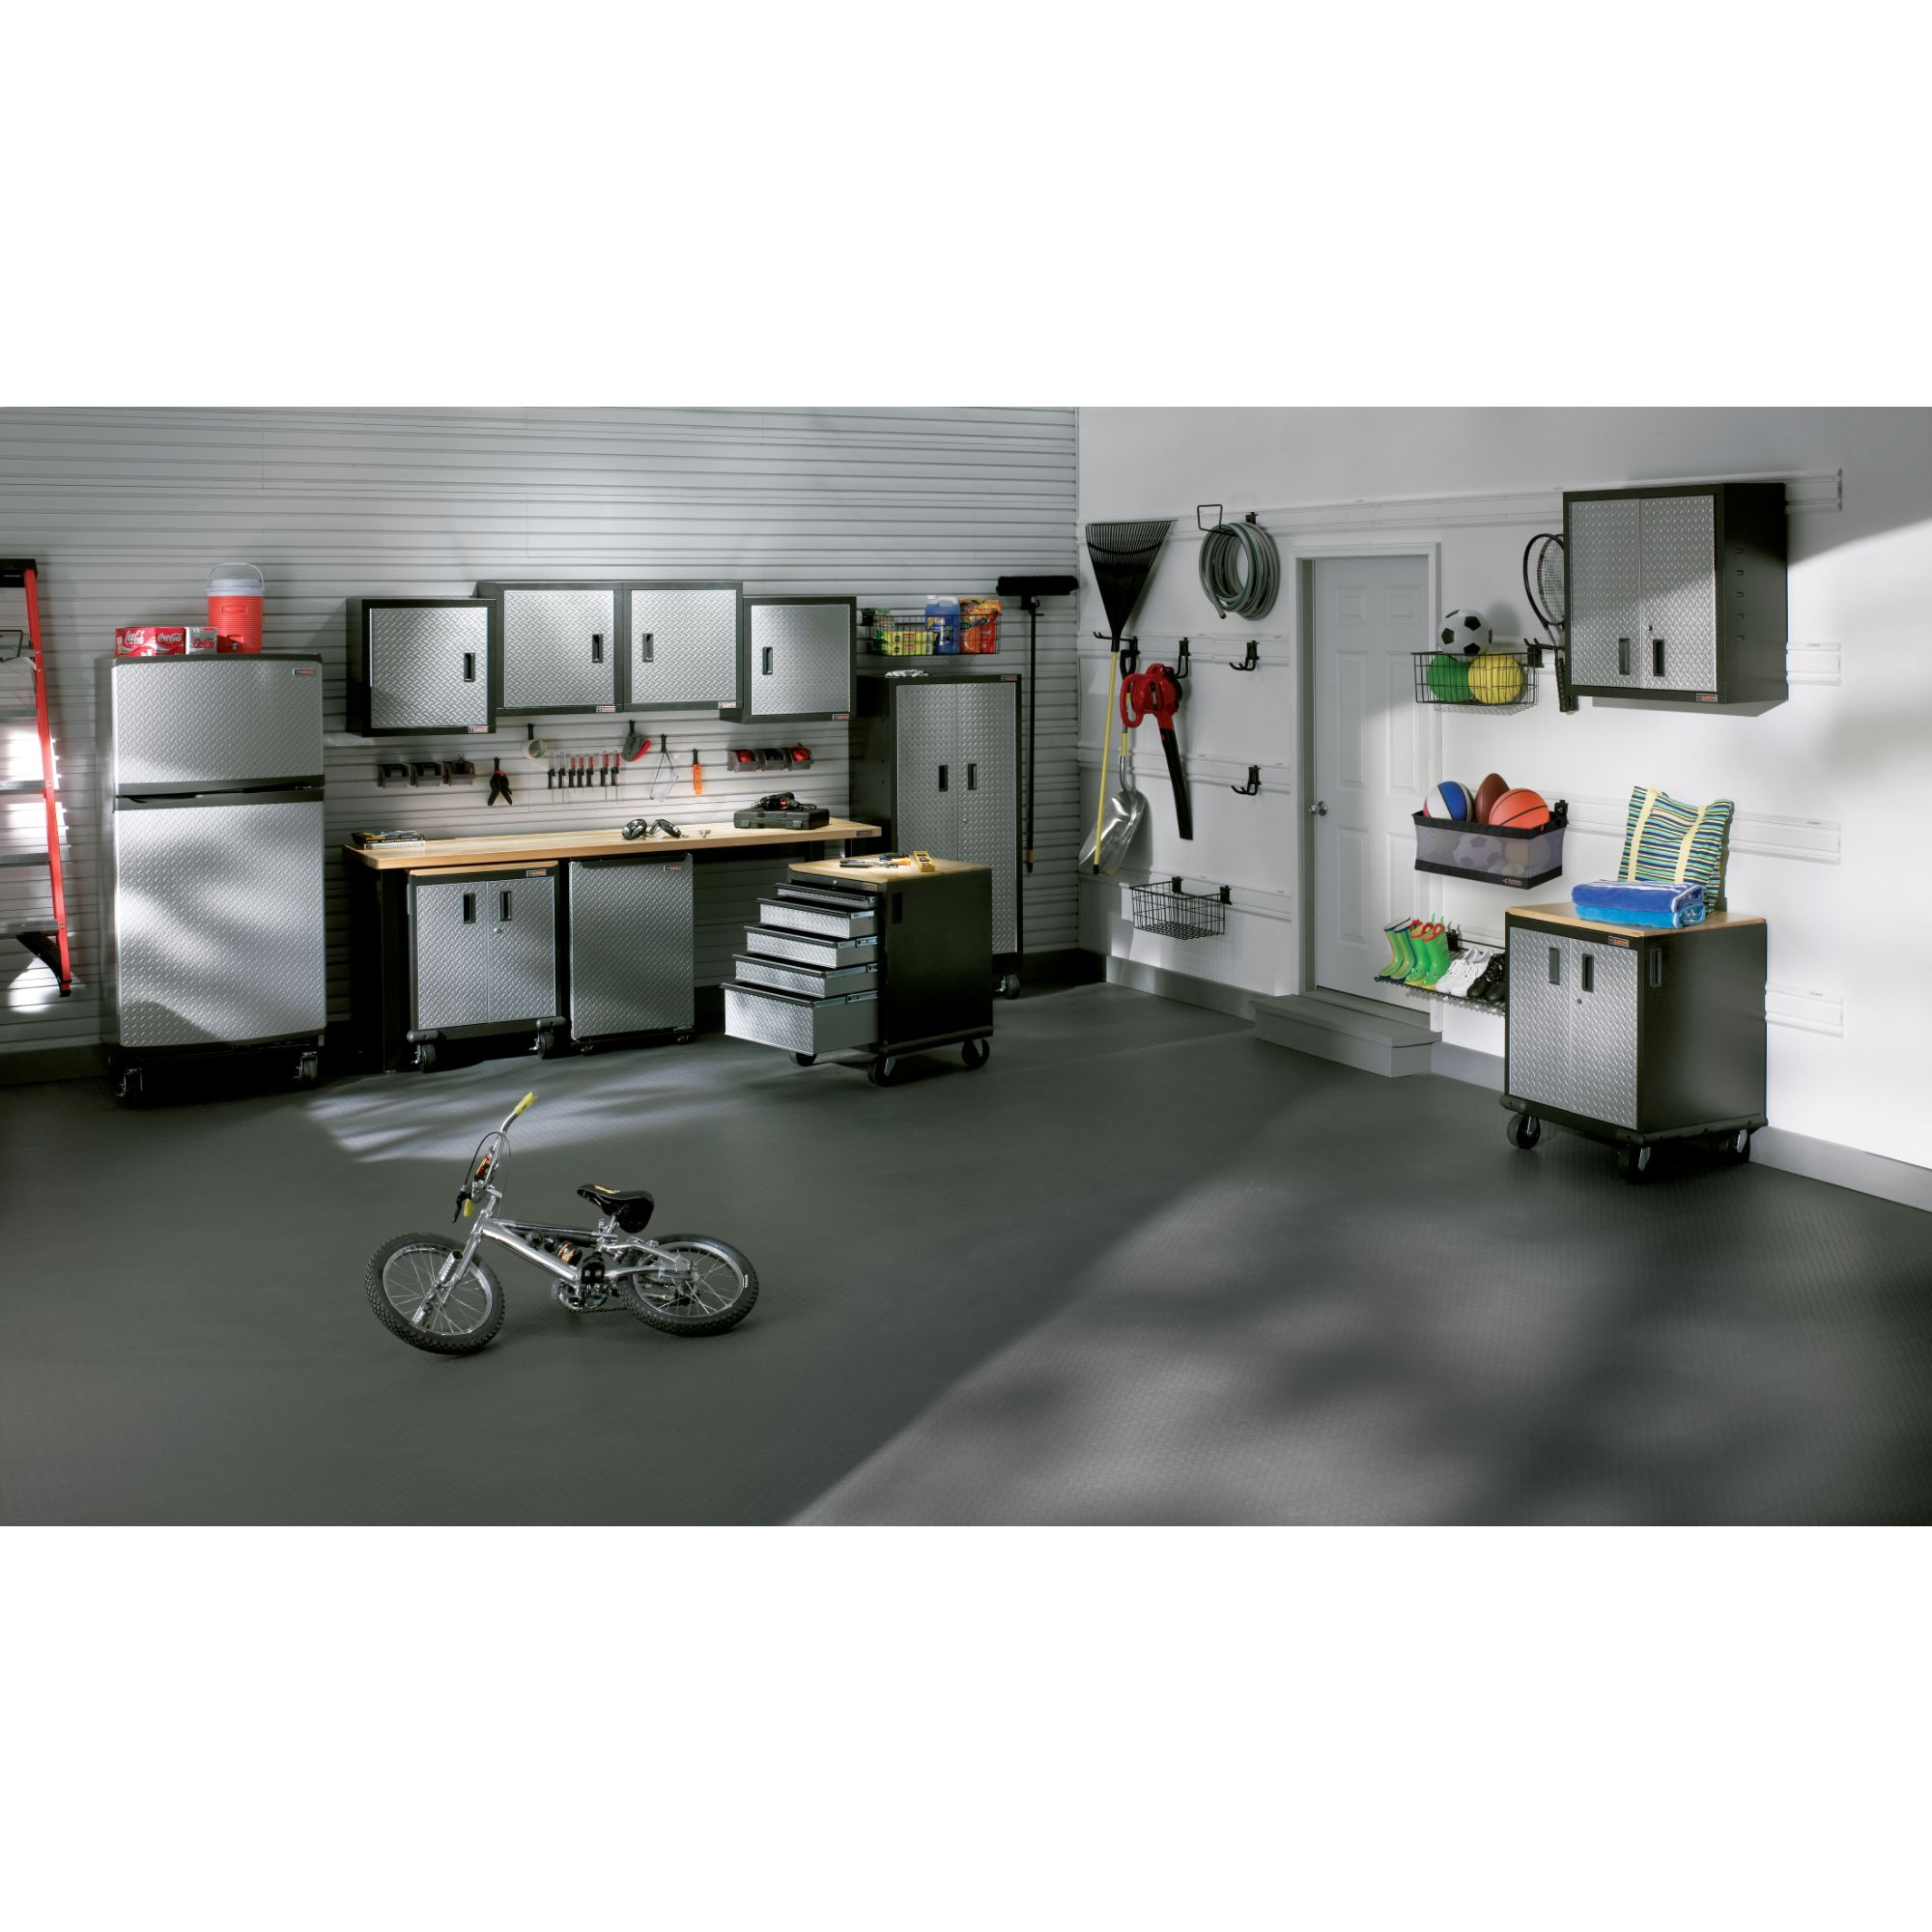 Gladiator Garage Wall Accessories Gladiator Gearwall 2 Pack Wall Panels Gawp082pmy